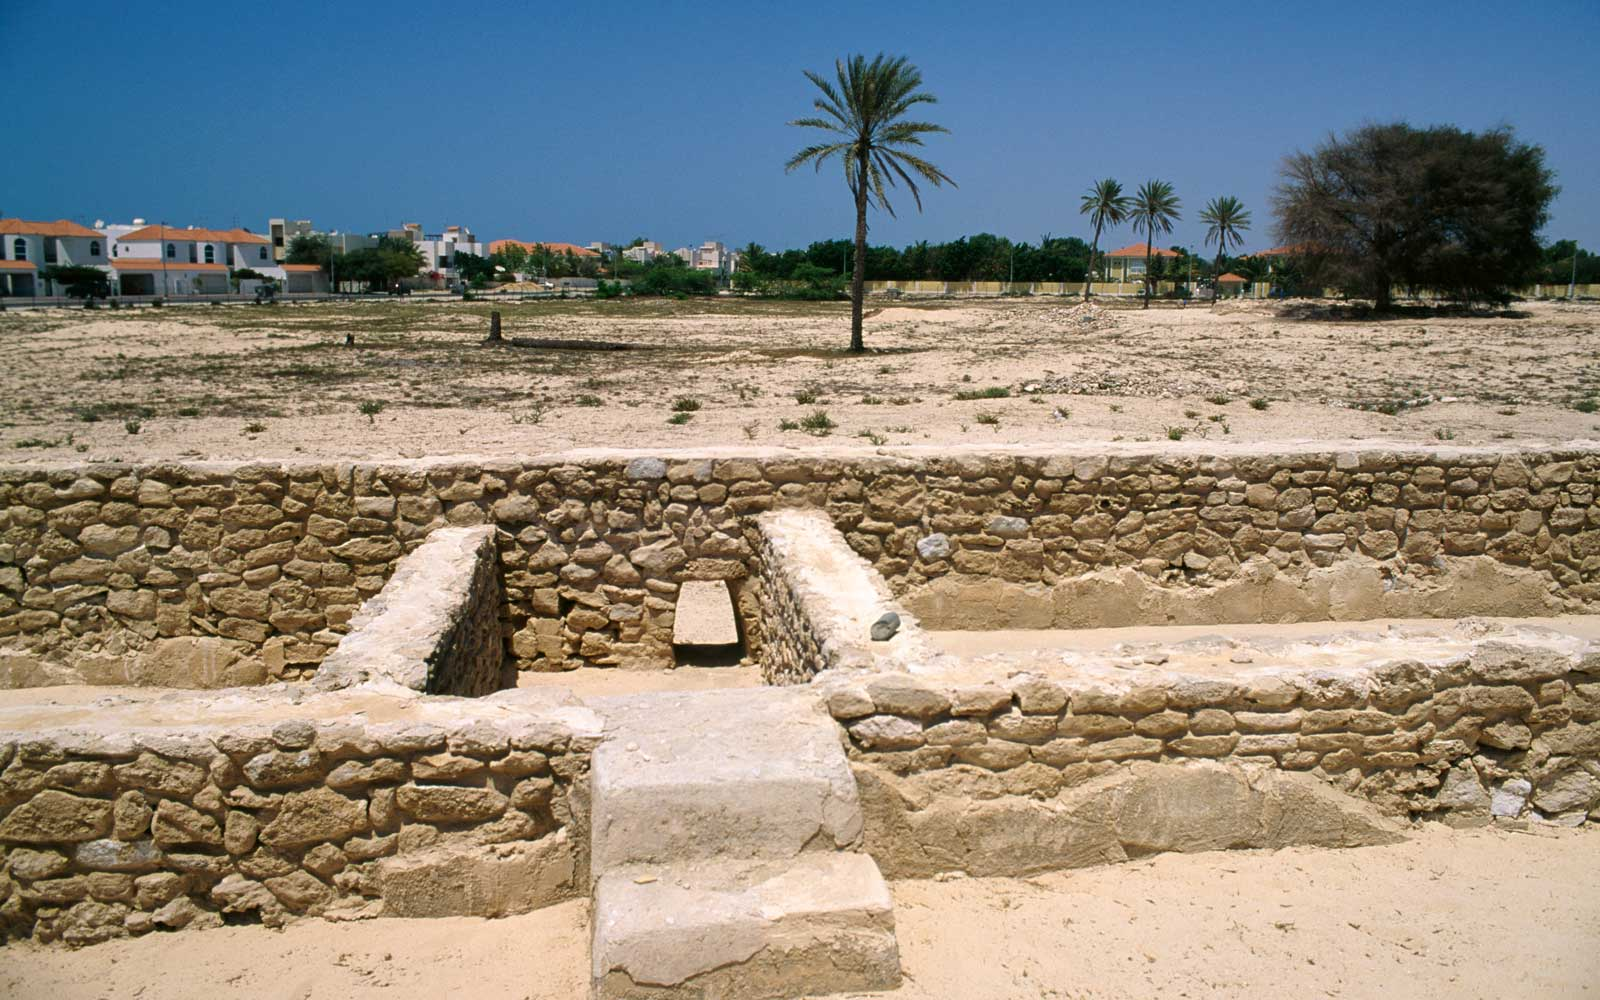 Ruins of the caravanserai (Al Khan), Jumeirah Archaeological Site, United Arab Emirates.